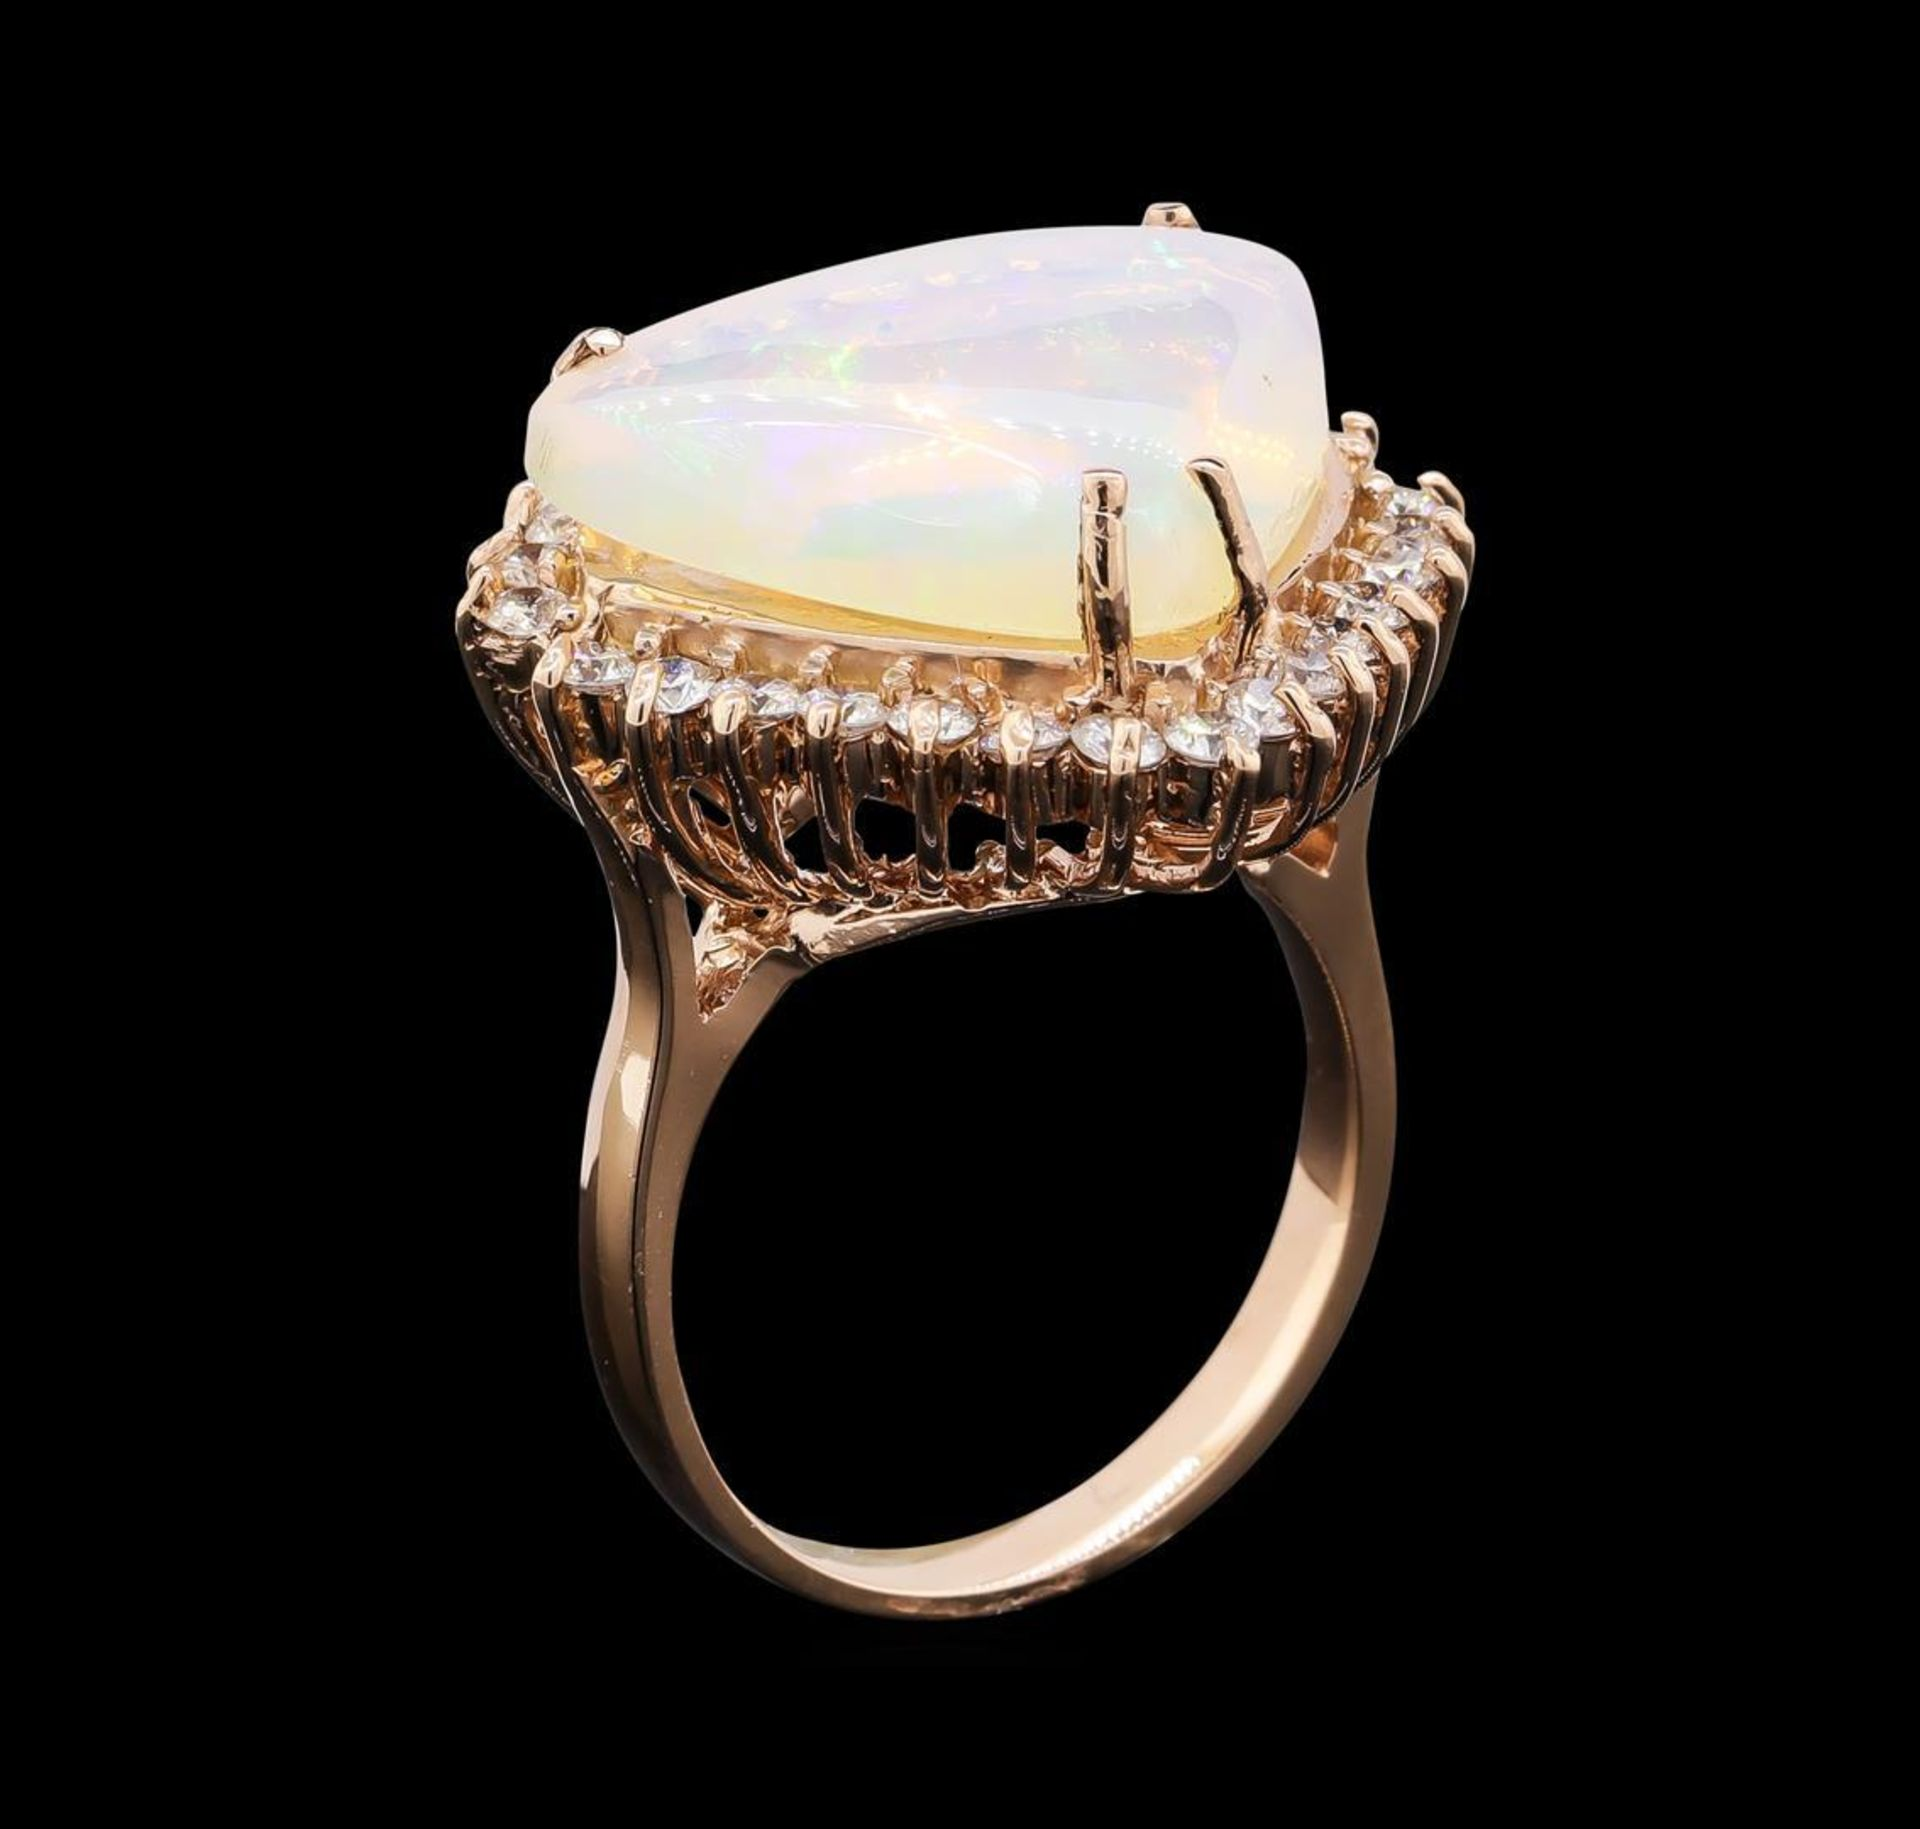 7.51 ctw Opal and Diamond Ring - 14KT Rose Gold - Image 4 of 5